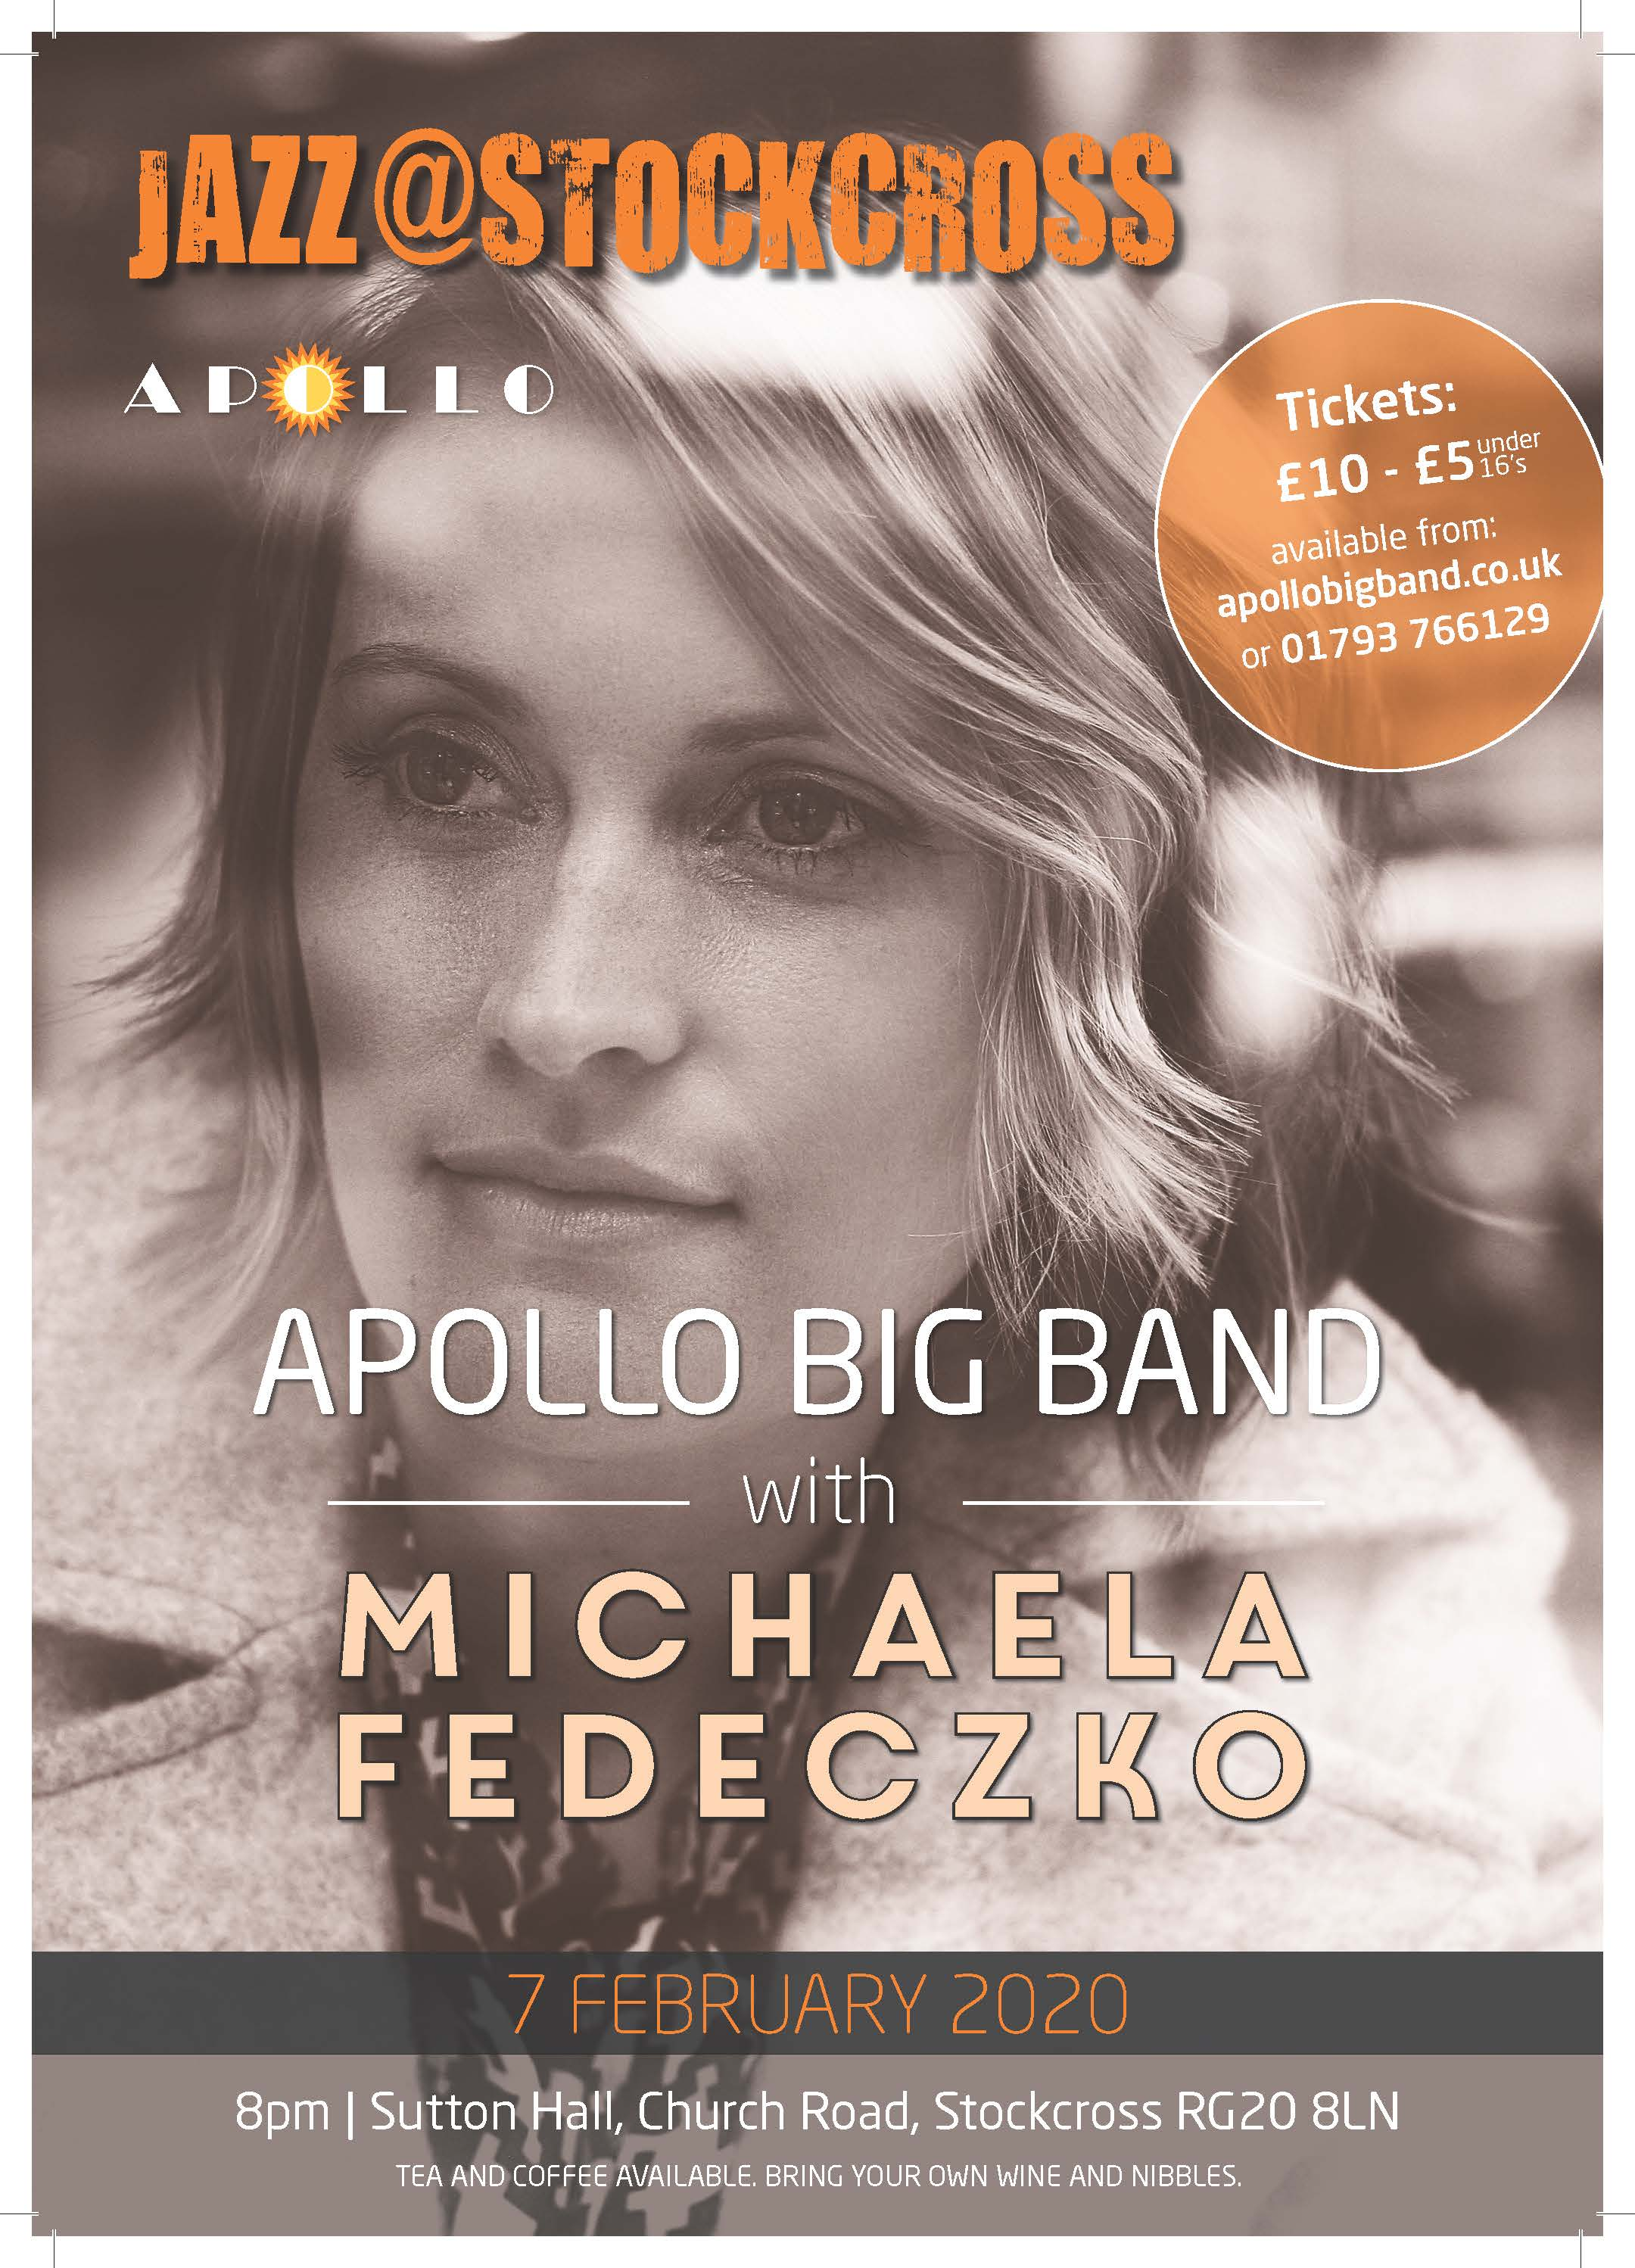 Apollo Big Band with vocalist Michaela Fedeczko